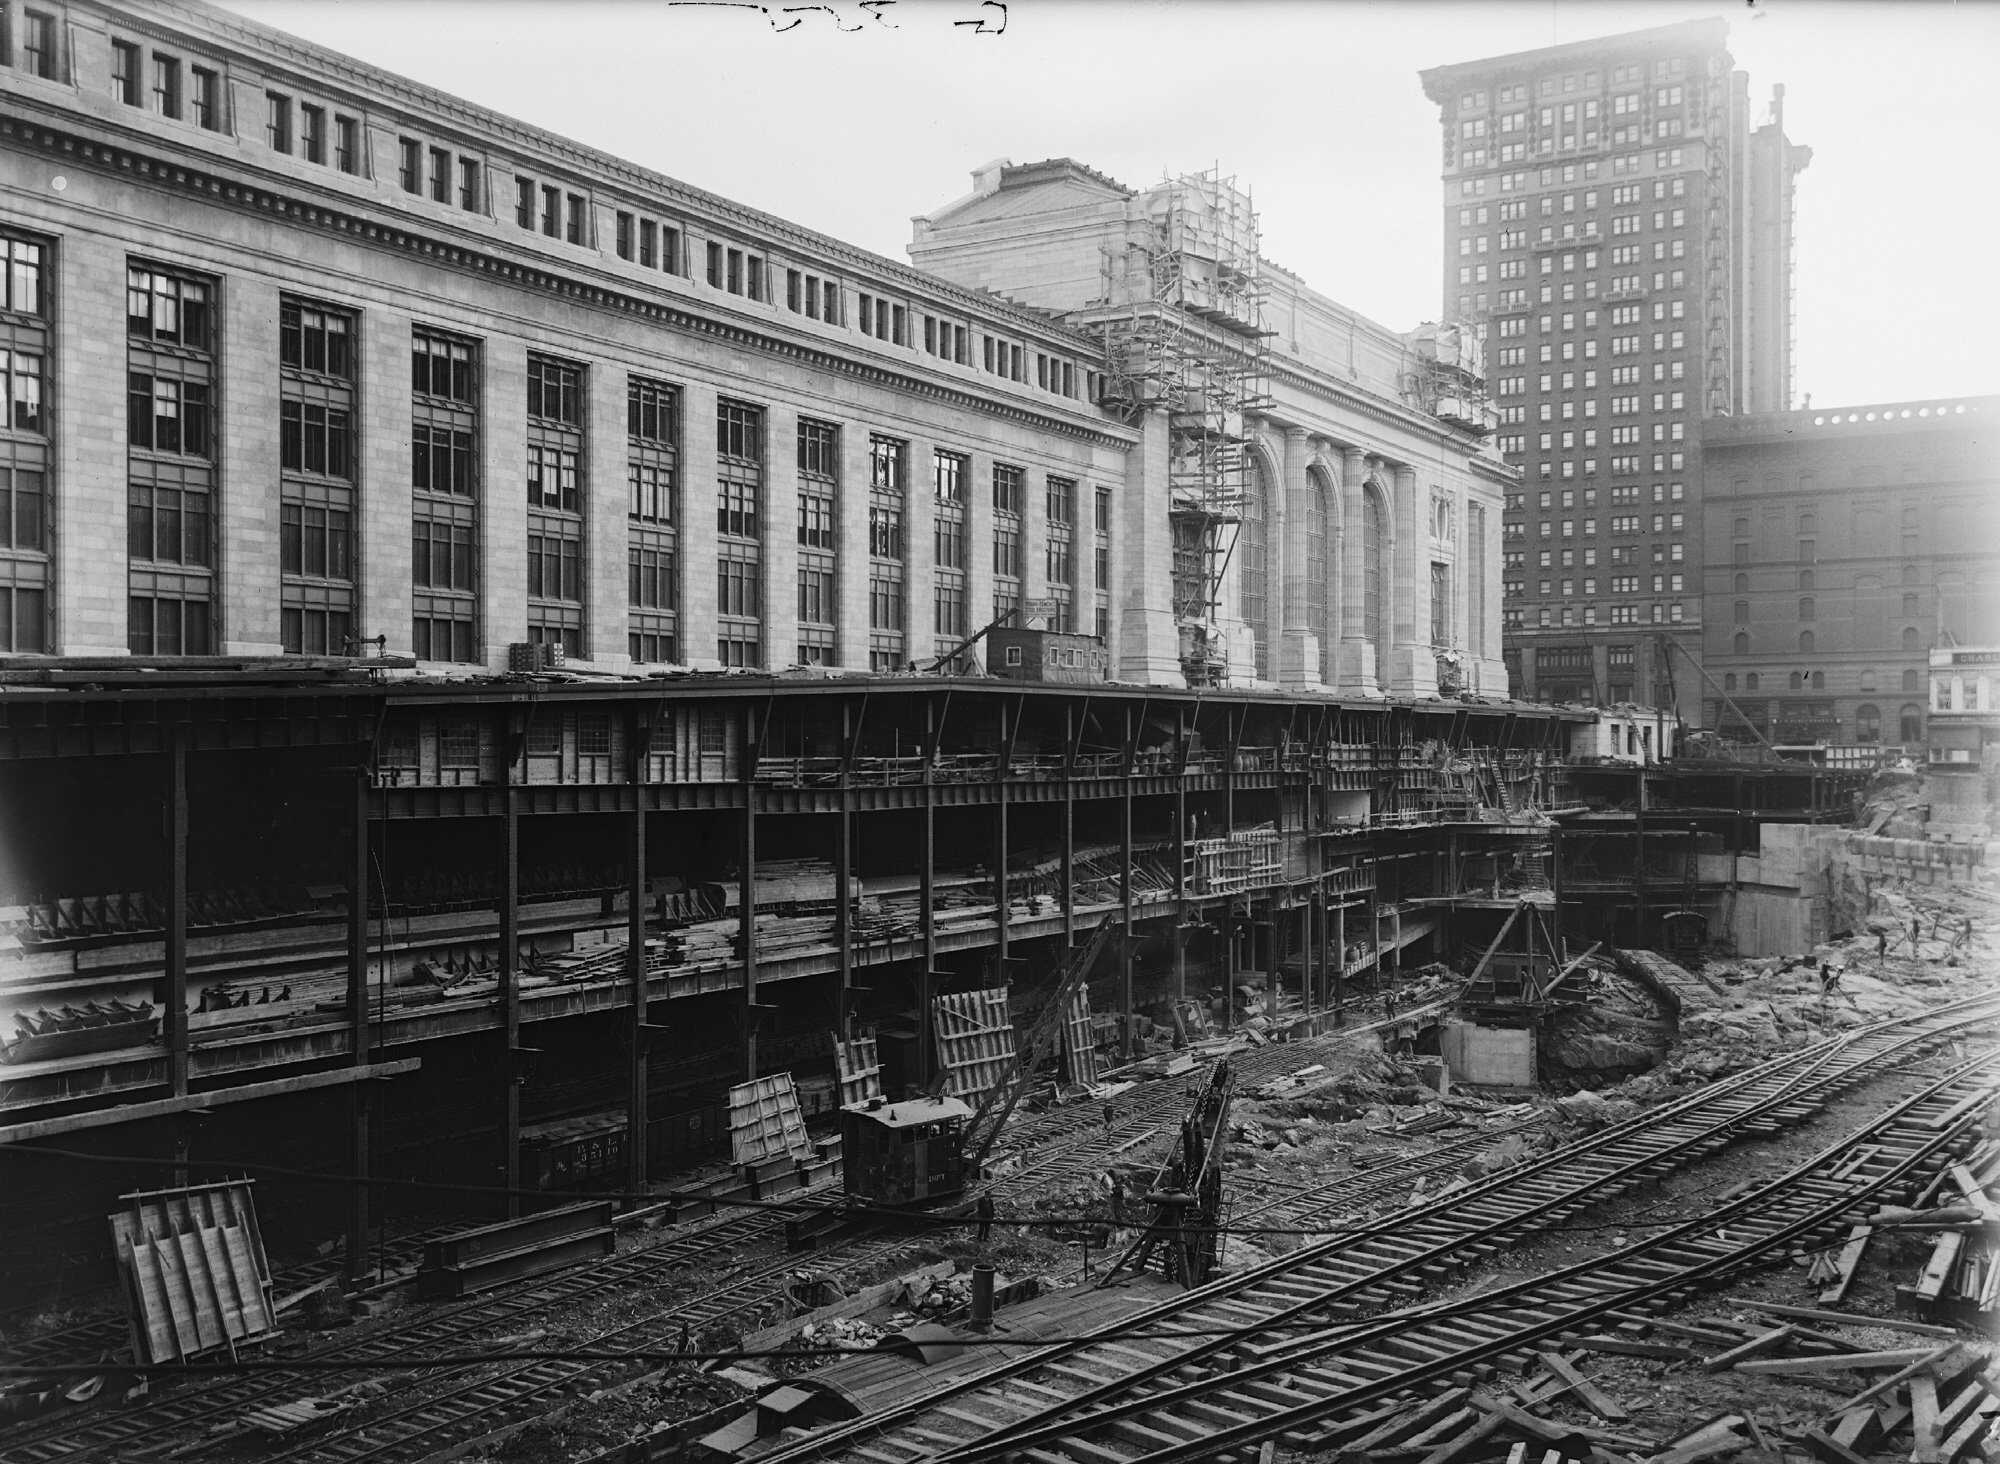 Grand-central-PS-1907-LOC-1905-1915.jpg